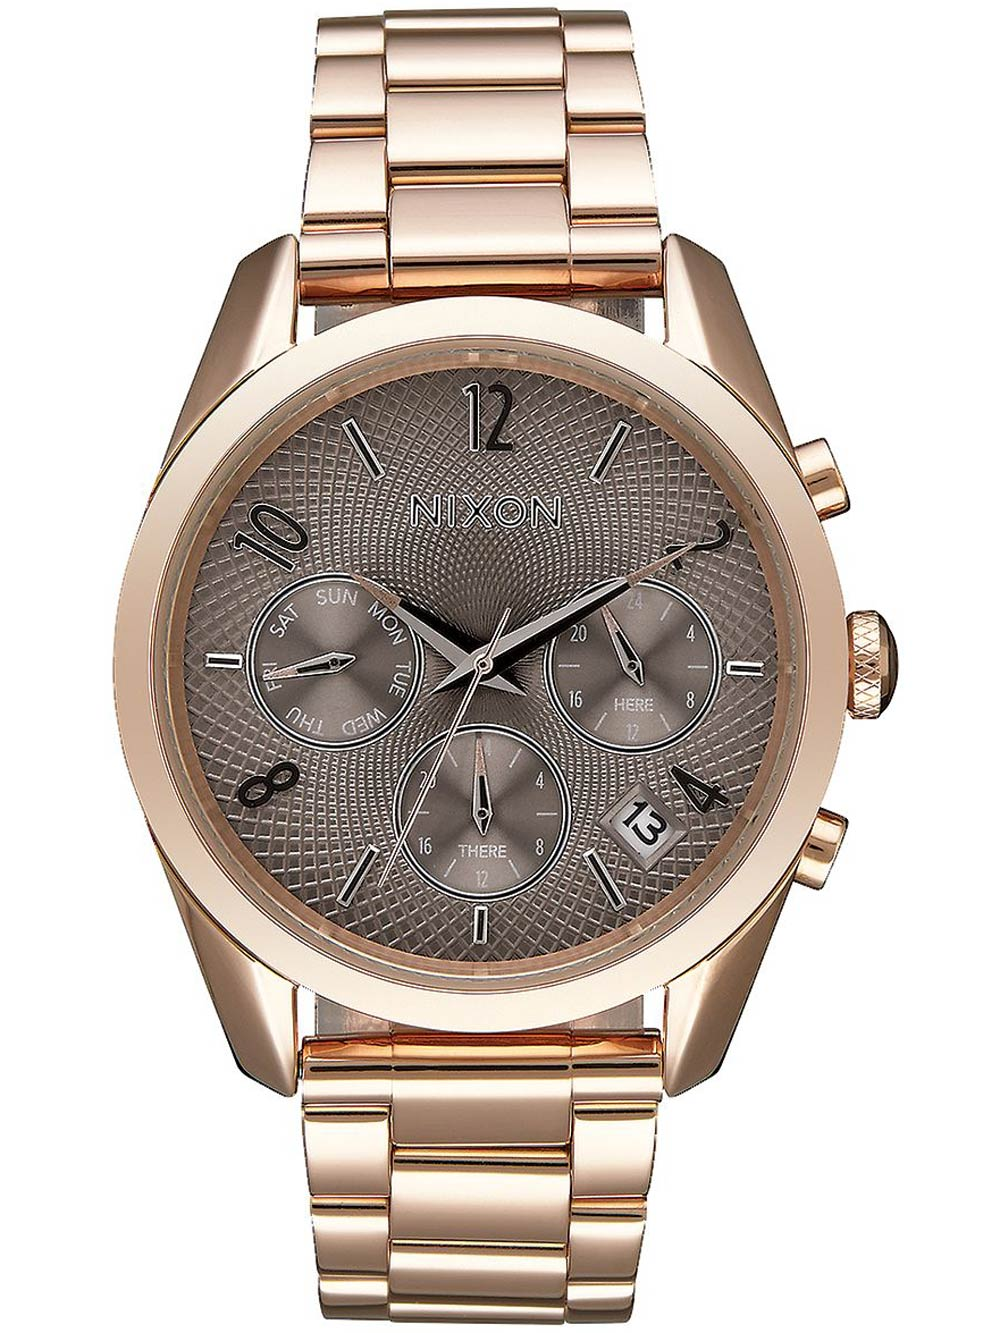 A949-2214 Bullet Chrono 36mm Rose Gold Taupe 5ATM